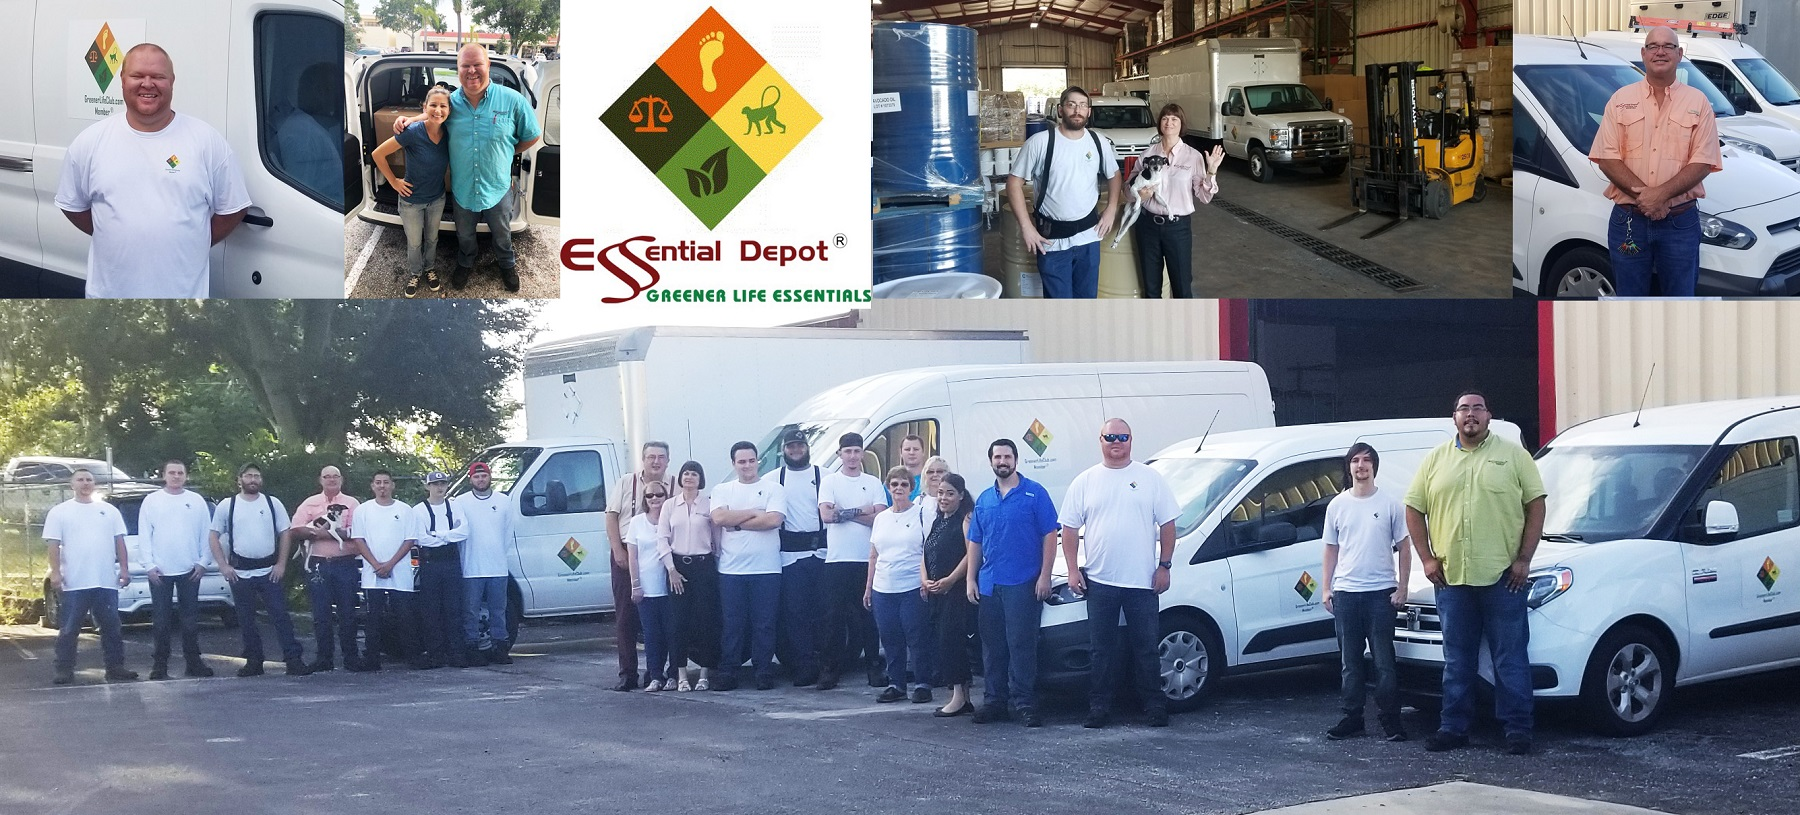 Essential Depot Team